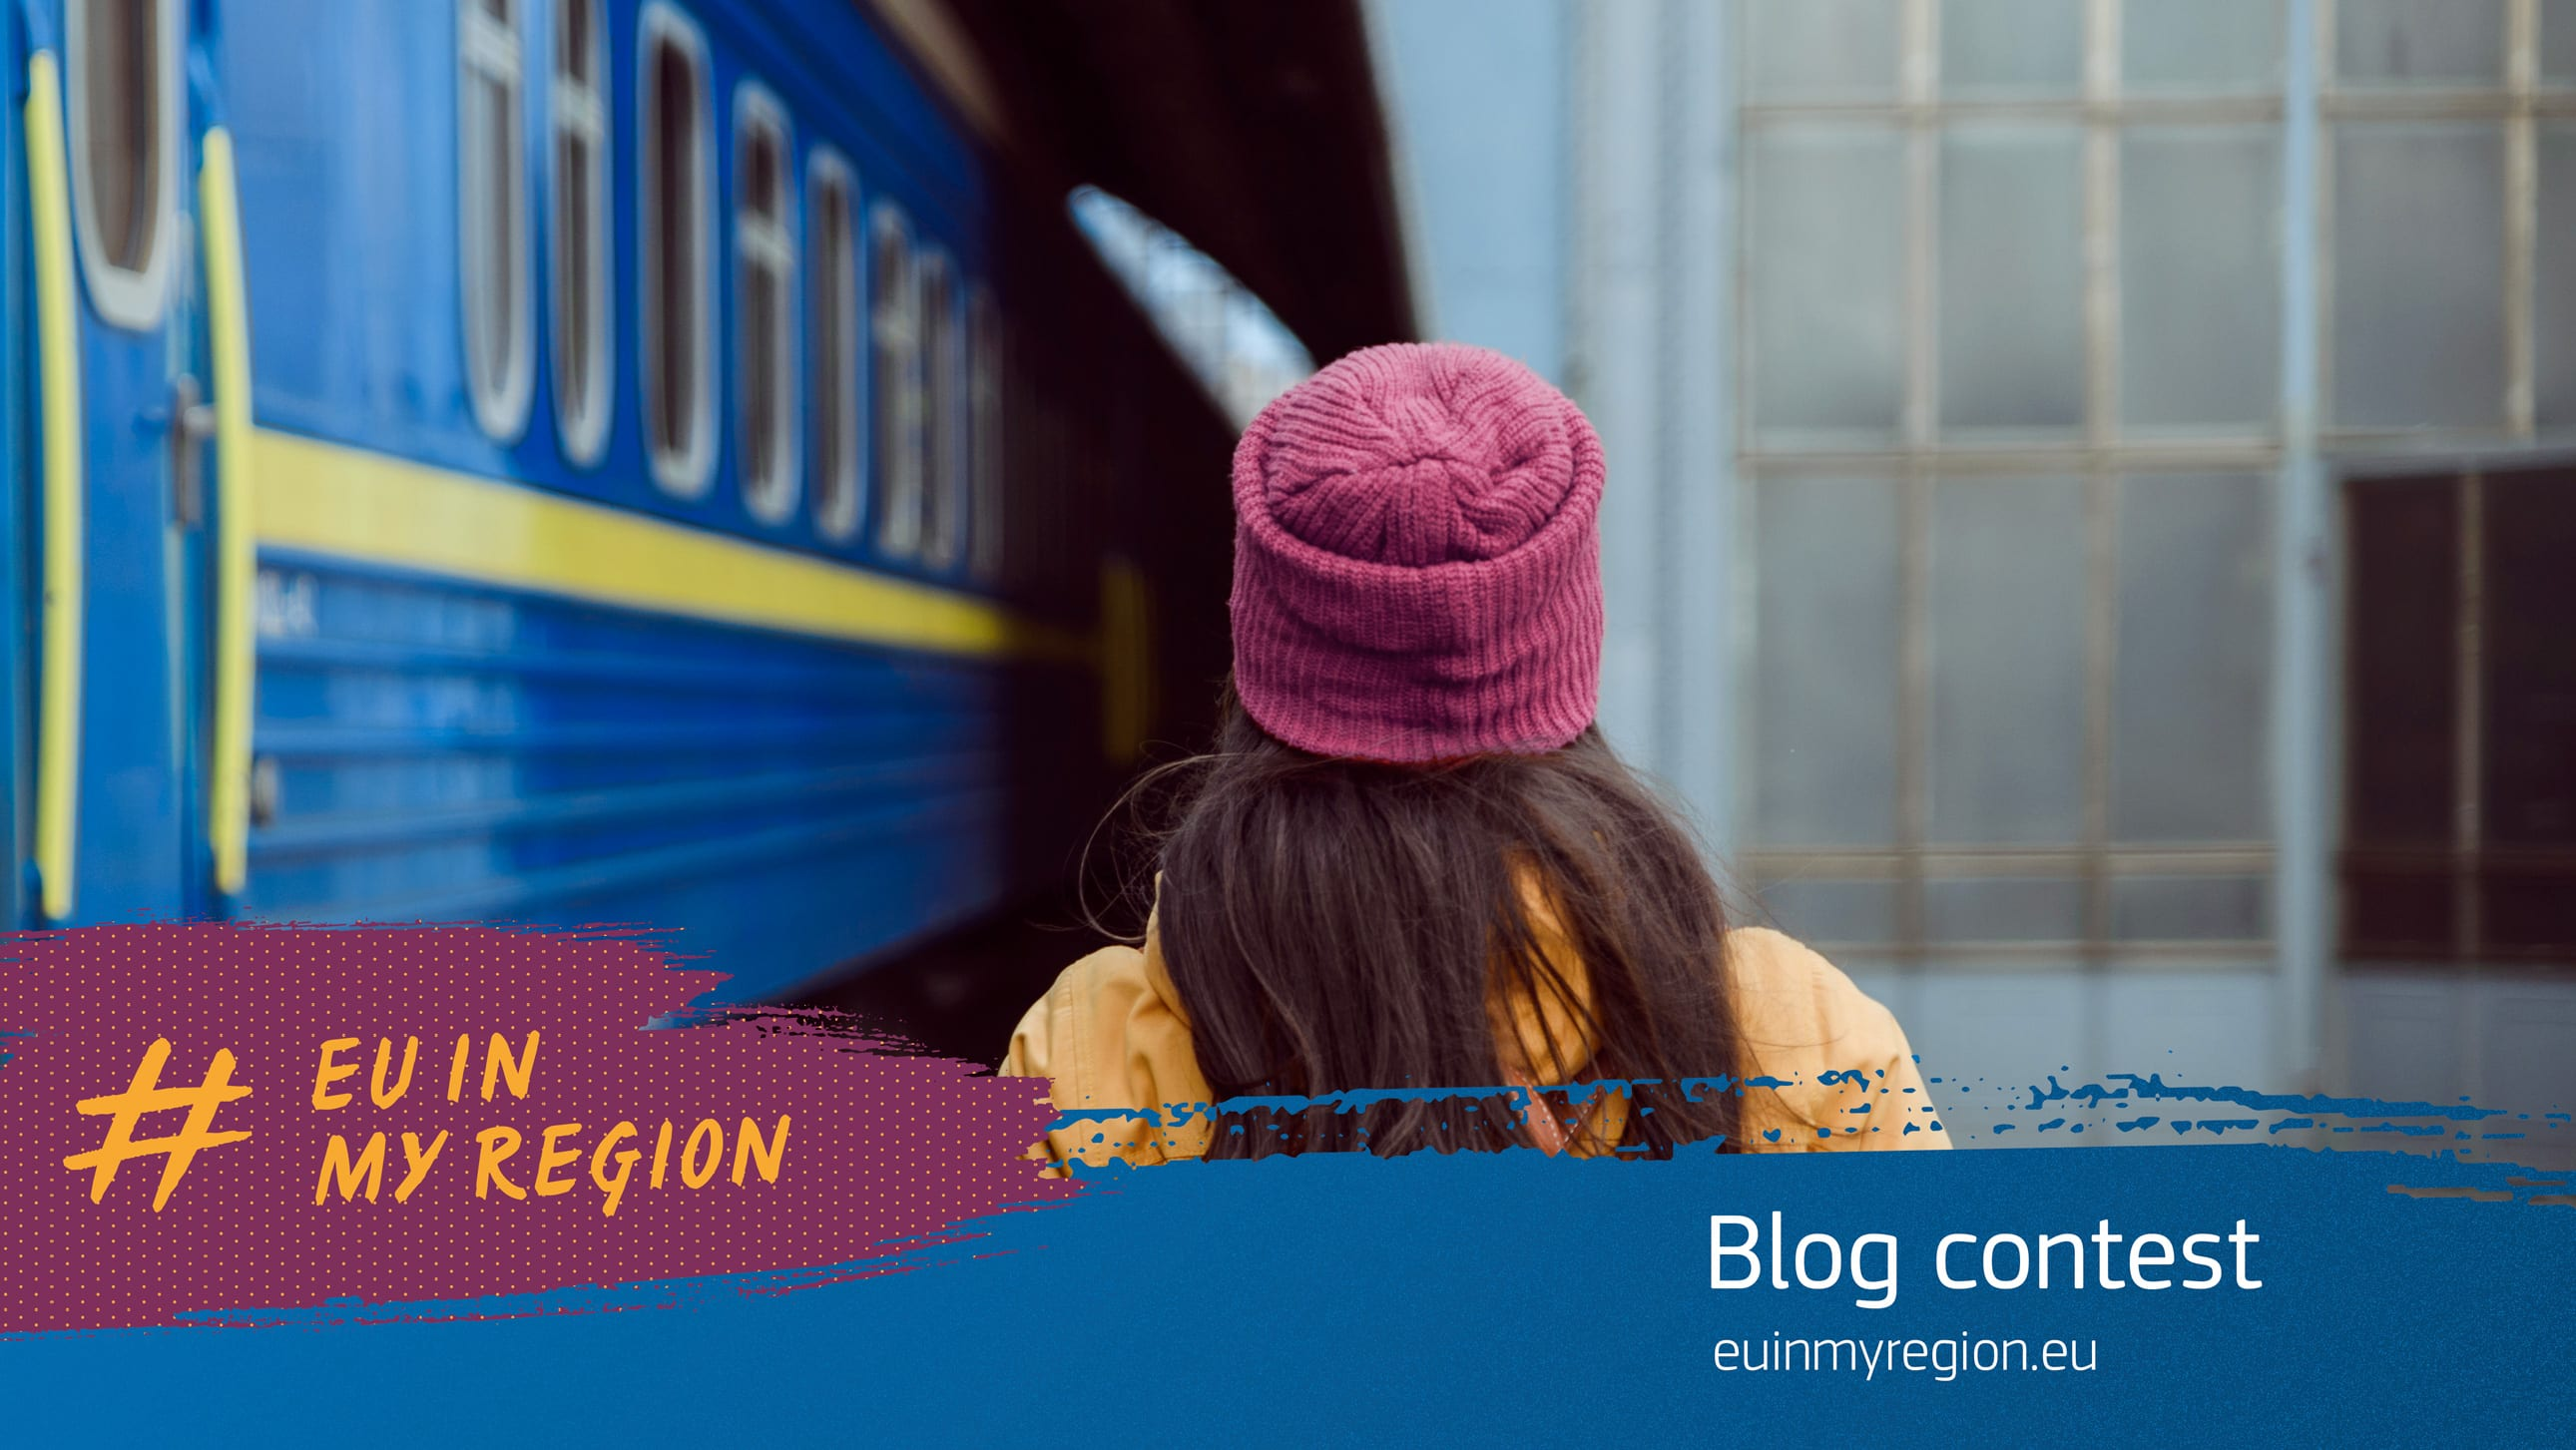 European Commission #EU in my Region Blog Contest 2018 (Win a funded trip to Brussels)